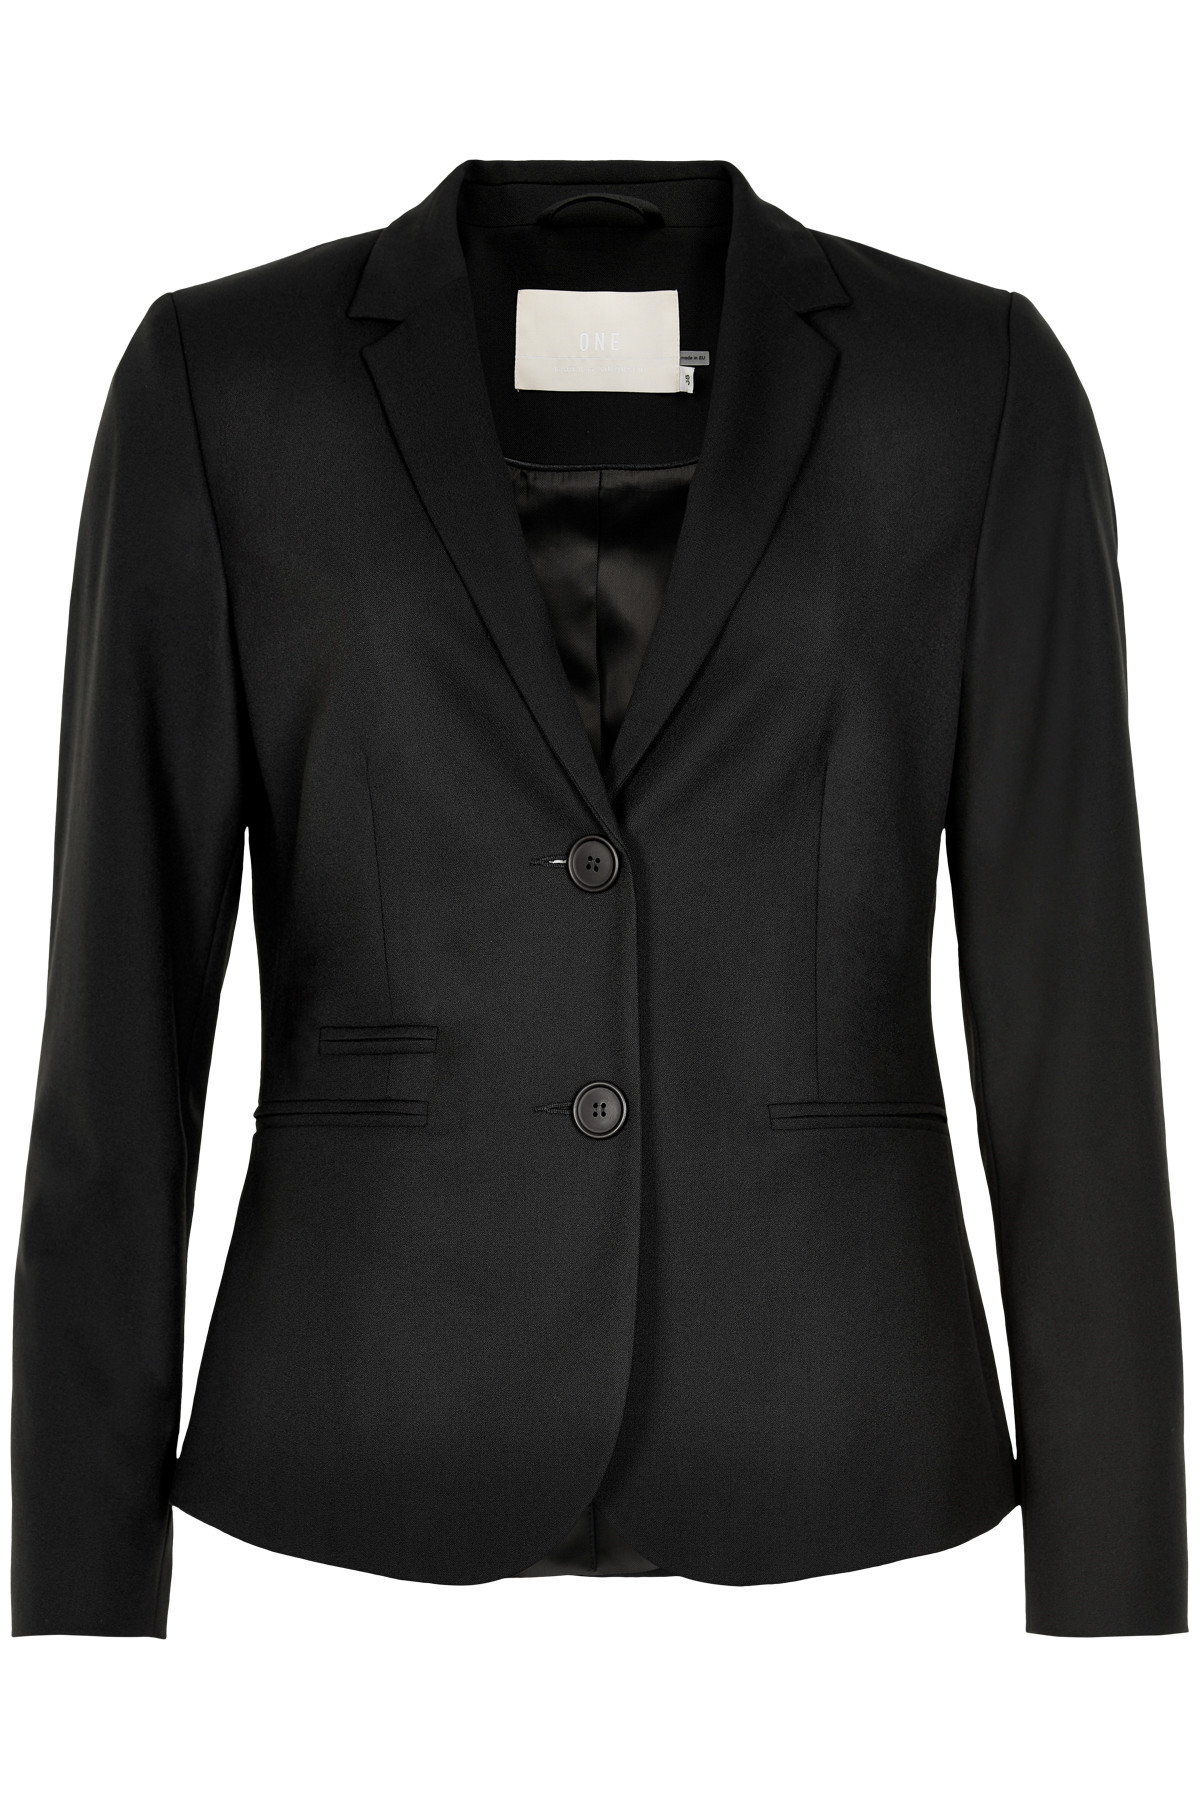 Image of   KAREN BY SIMONSEN SYDNEY BLAZER 10102089 (Black 40999, 44)